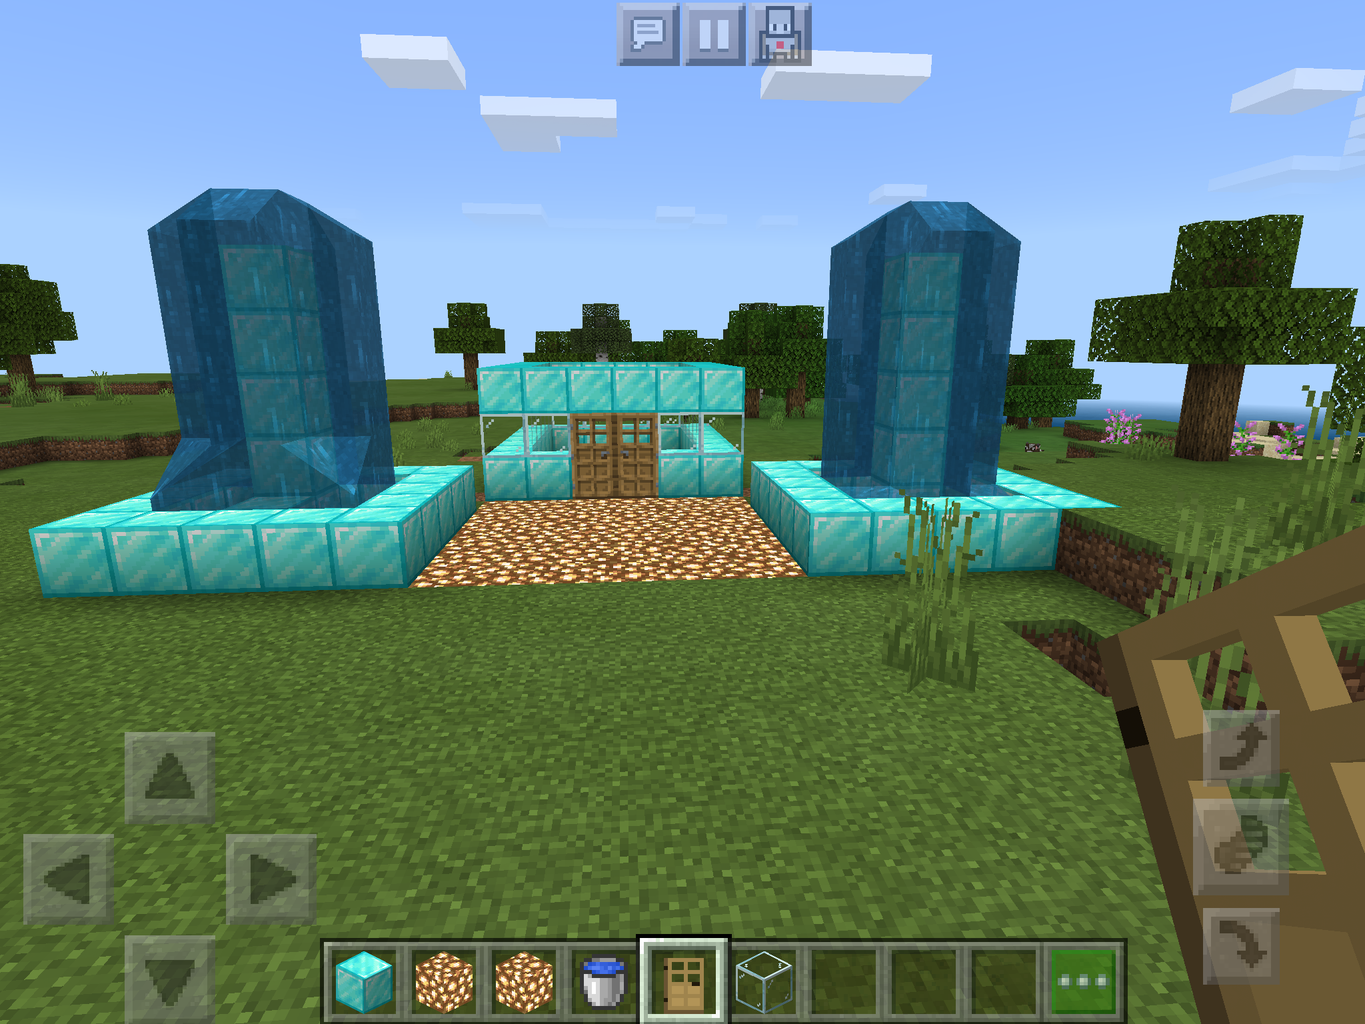 How to Make a Fountain in Minecraft